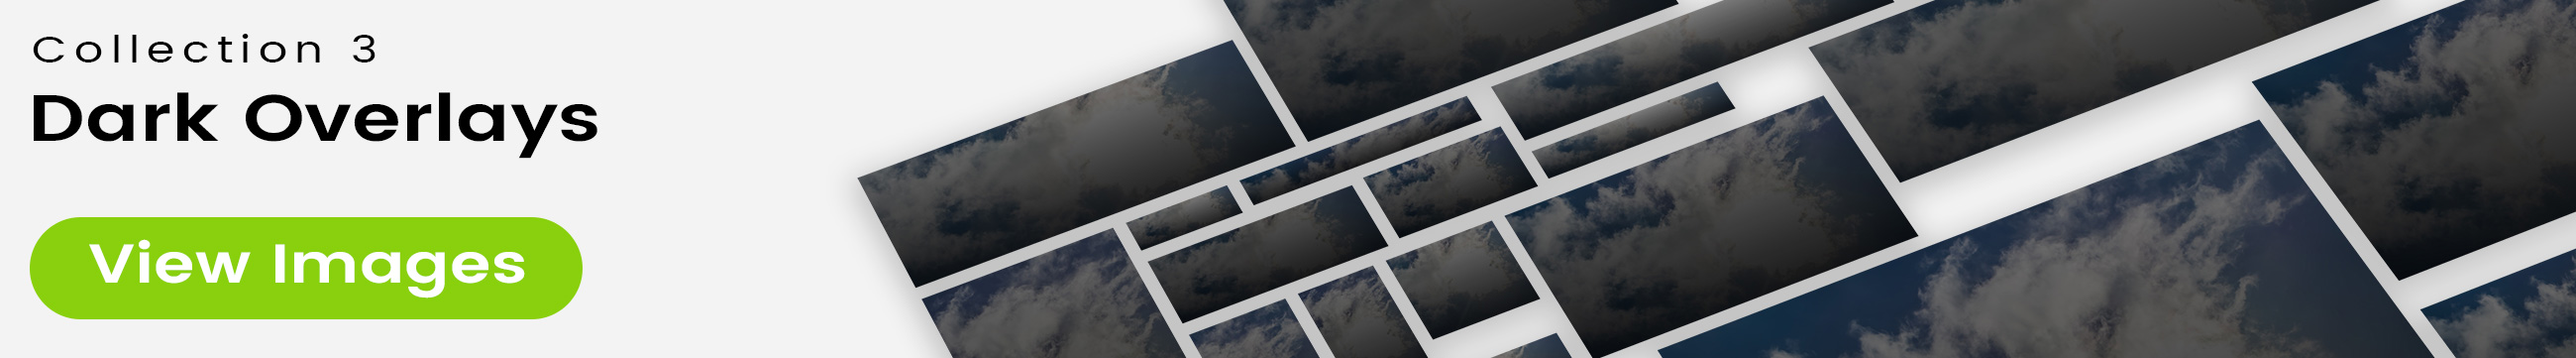 See 25 bonus images included with clouds stock image 9467. Collection 3 of 4 features a dark overlay design.